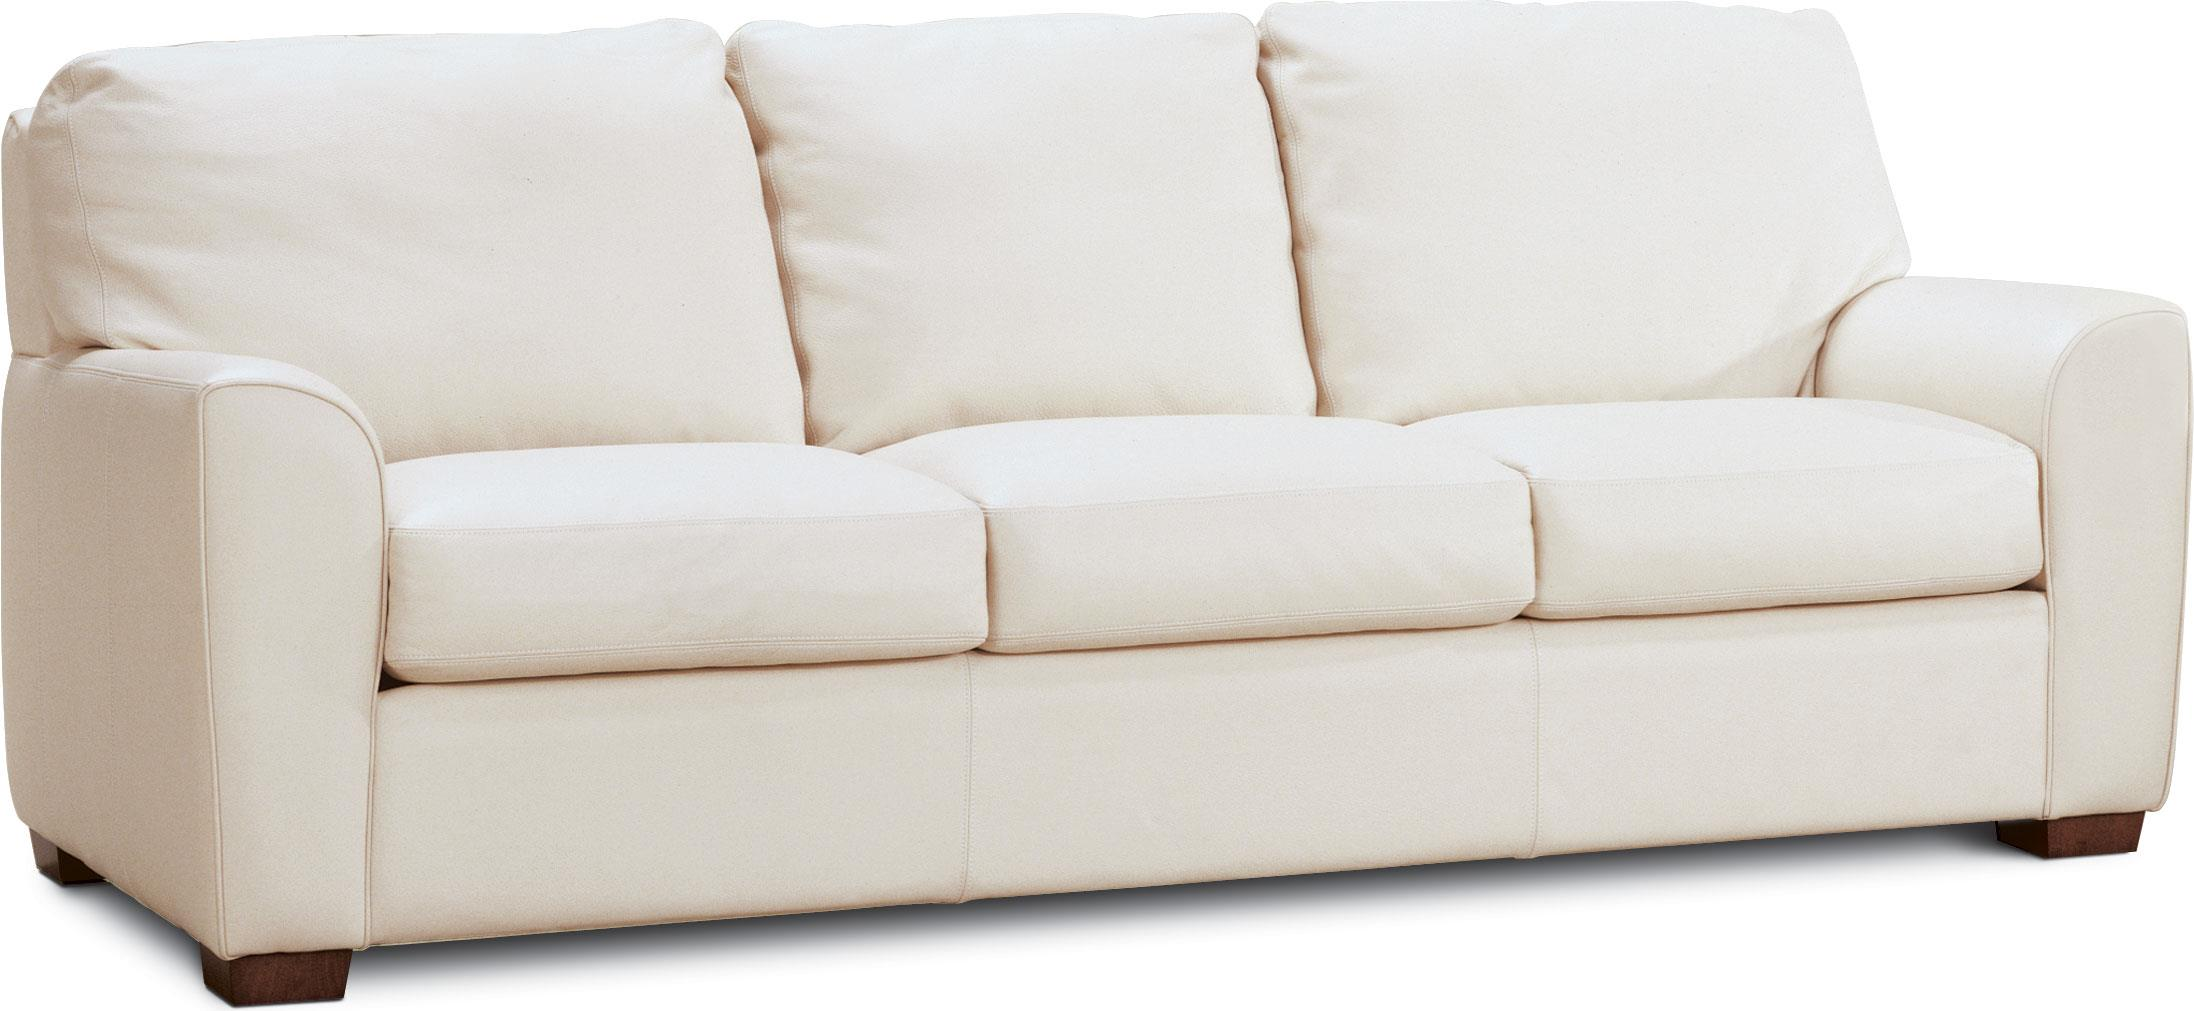 Kaden Sofa by American Leather at Sprintz Furniture